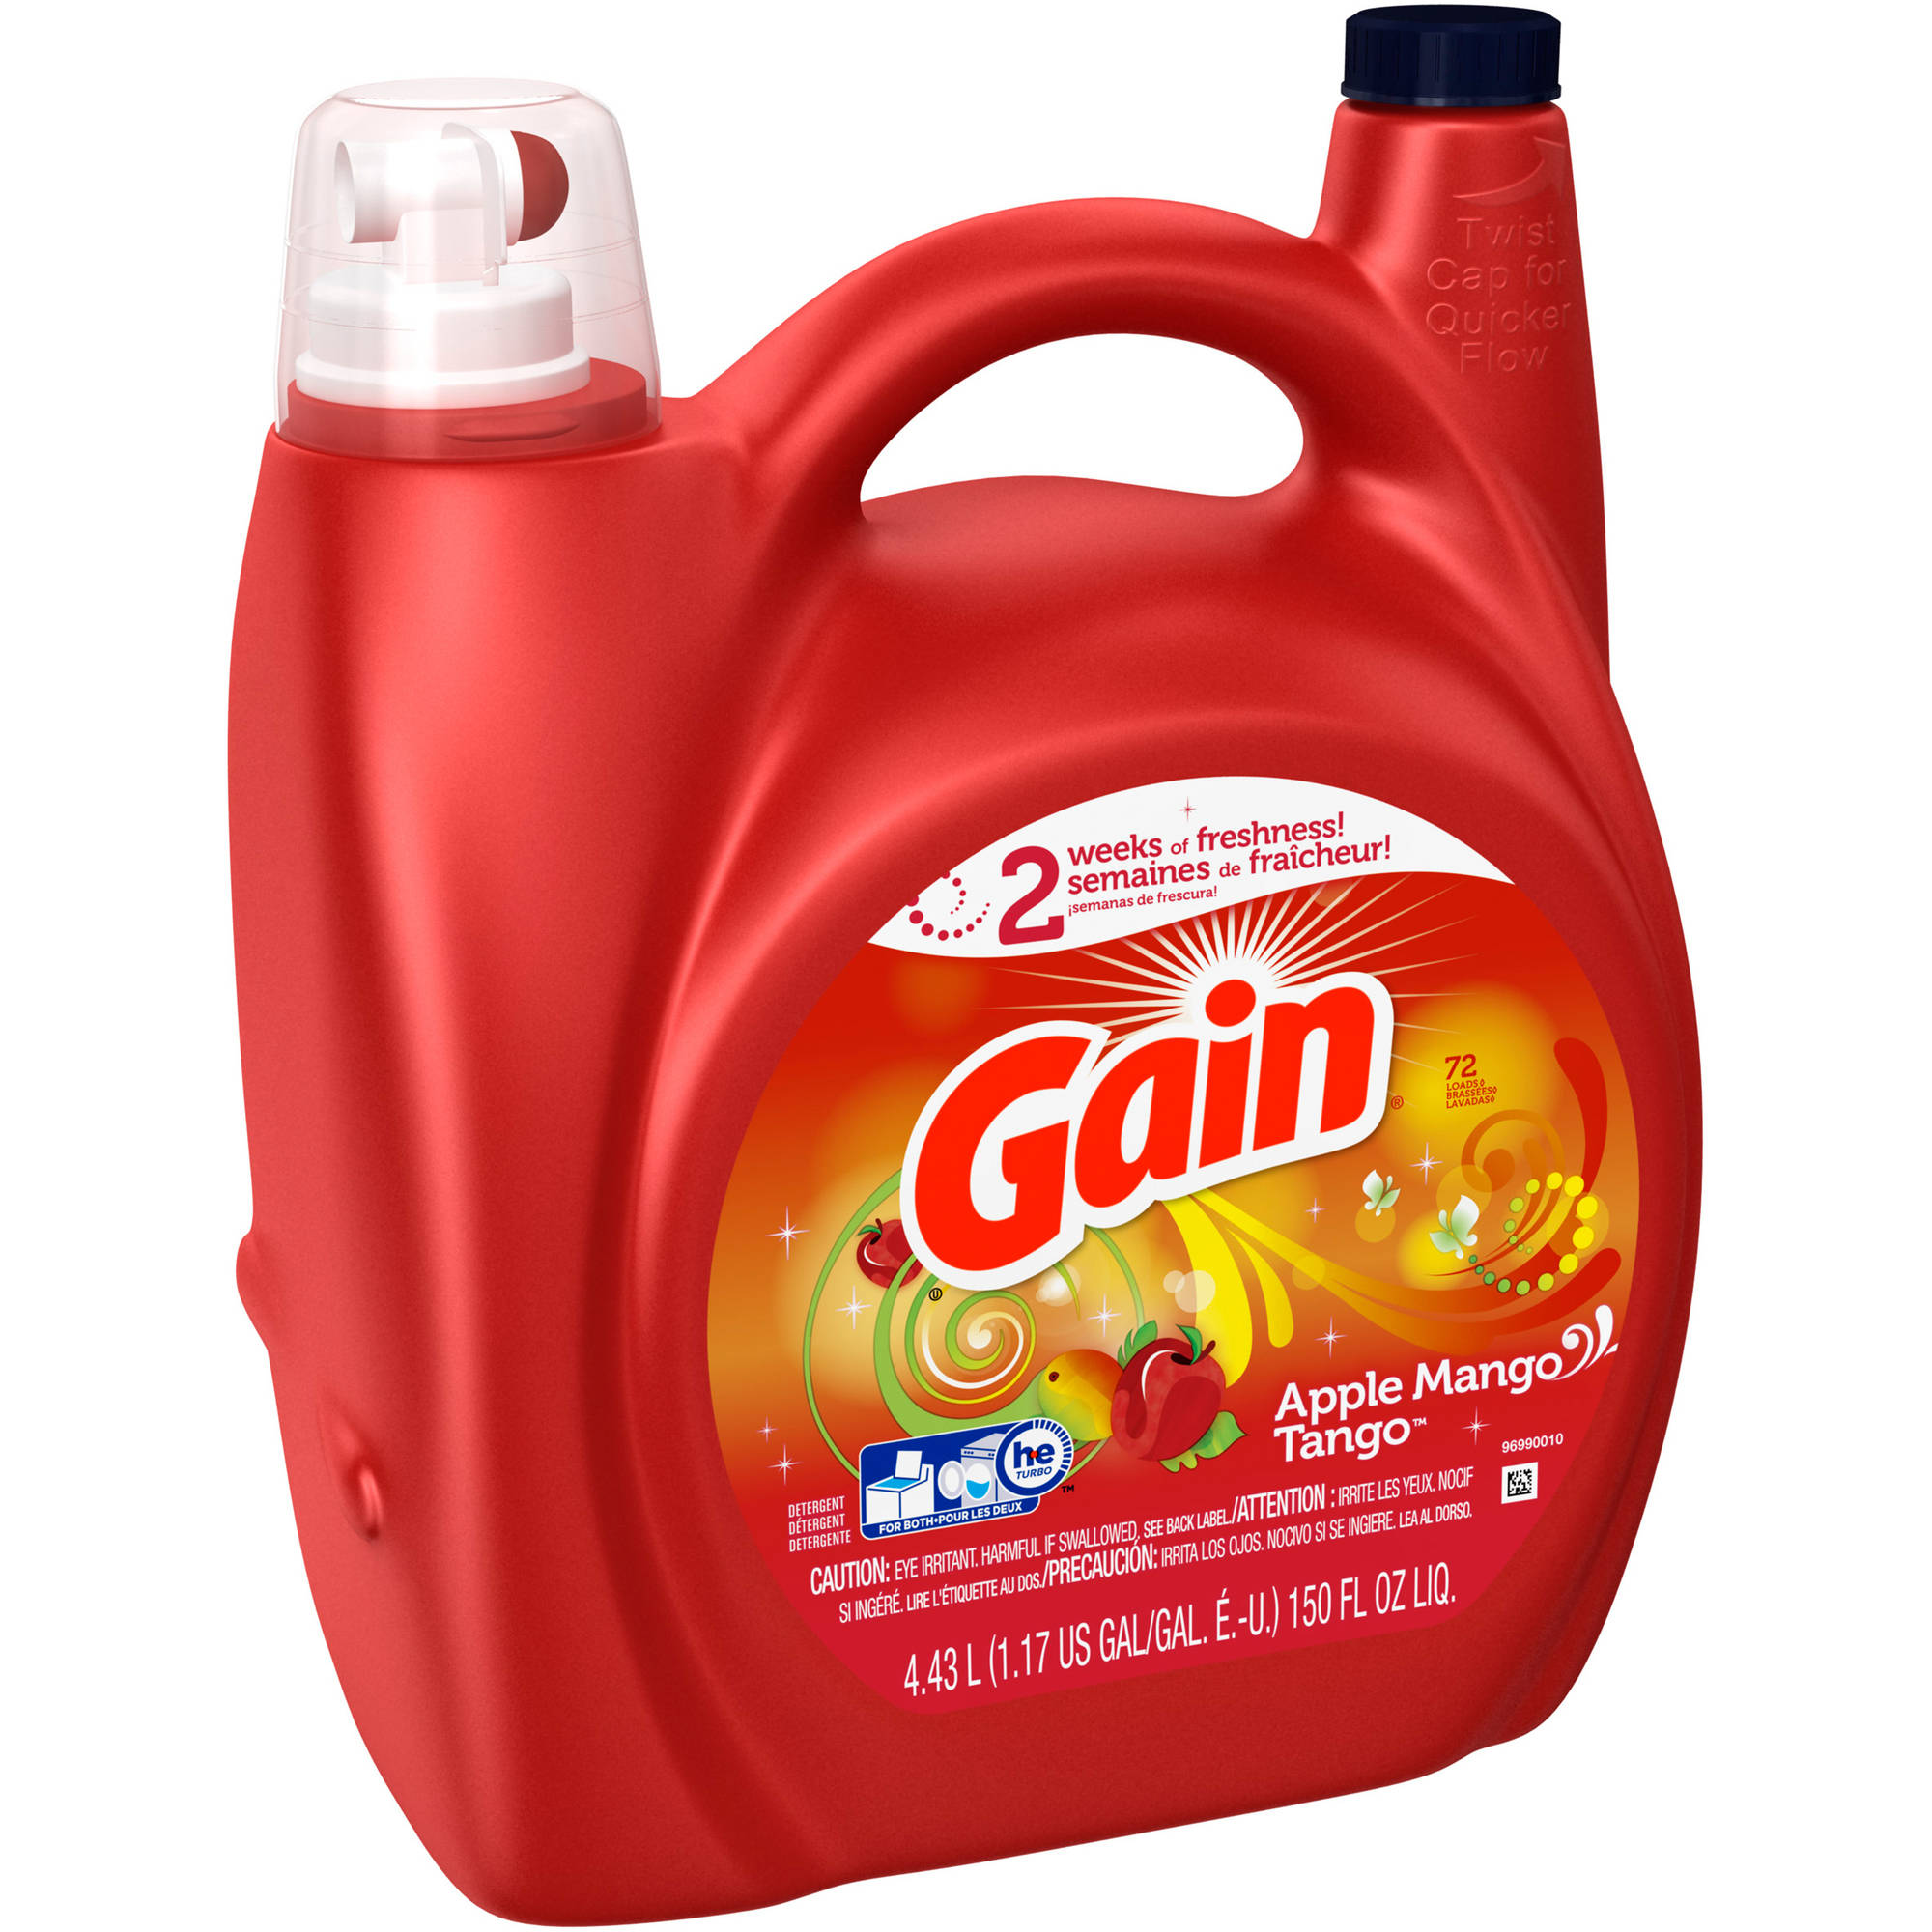 Gain Liquid Laundry Detergent, Apple Mango Tango, 72 Loads, 150 fl oz